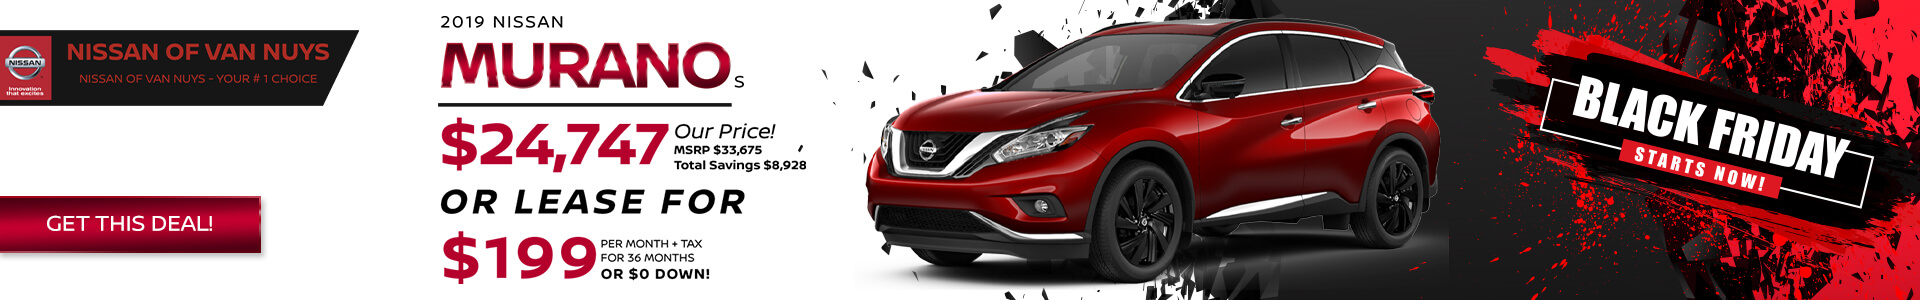 Nissan Murano - Lease for $219